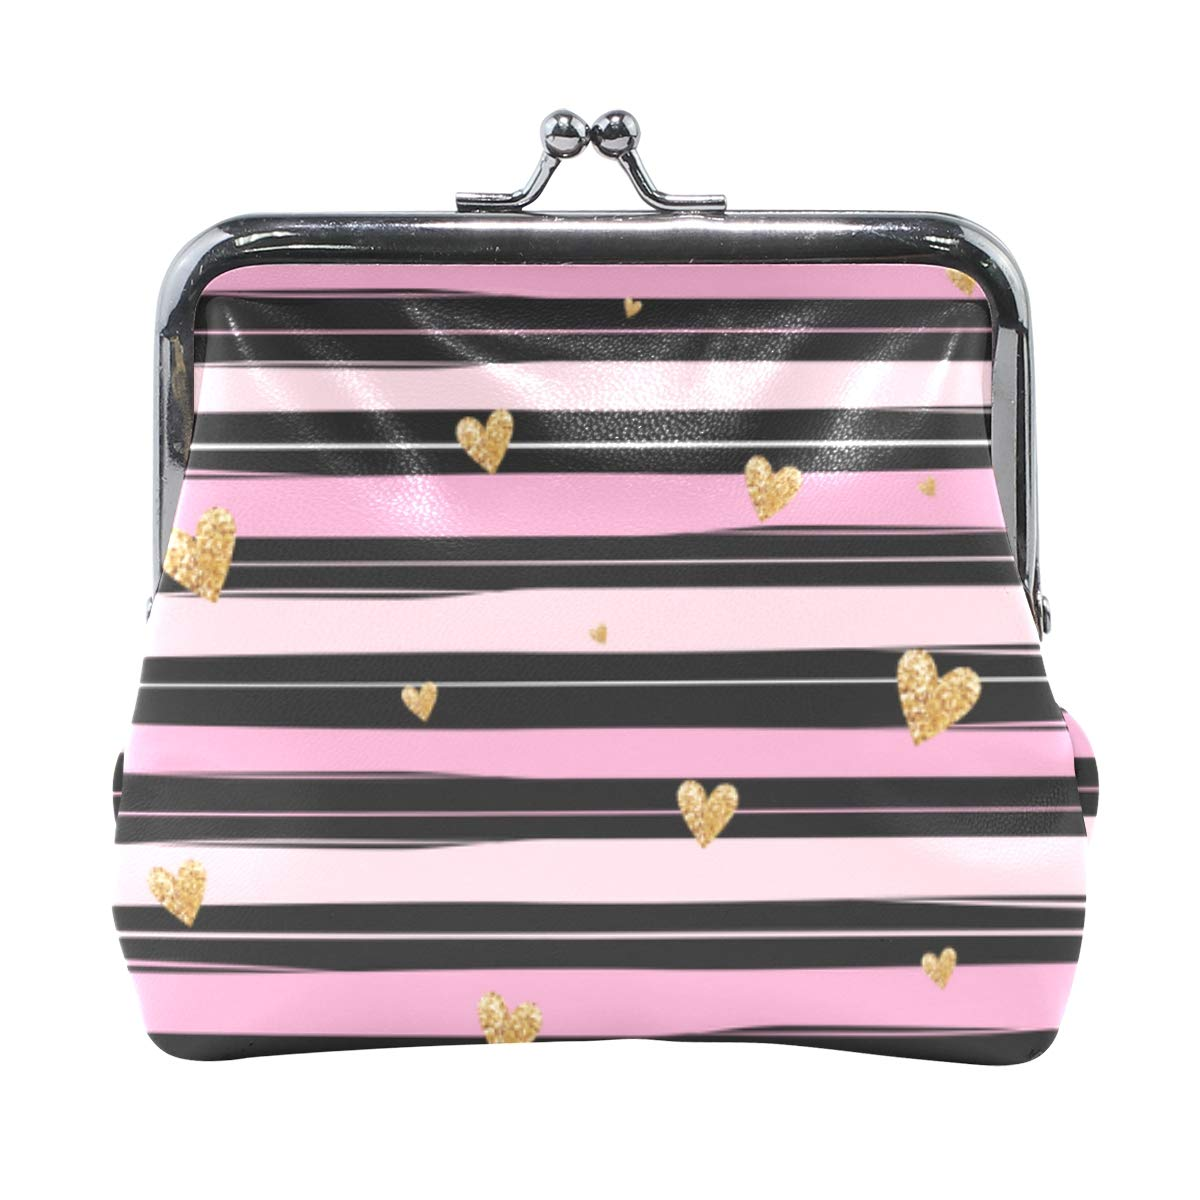 4cba42cffde6 Amazon.com: Wallet Gold Glittering Heart Pink Black Stripe Coin ...